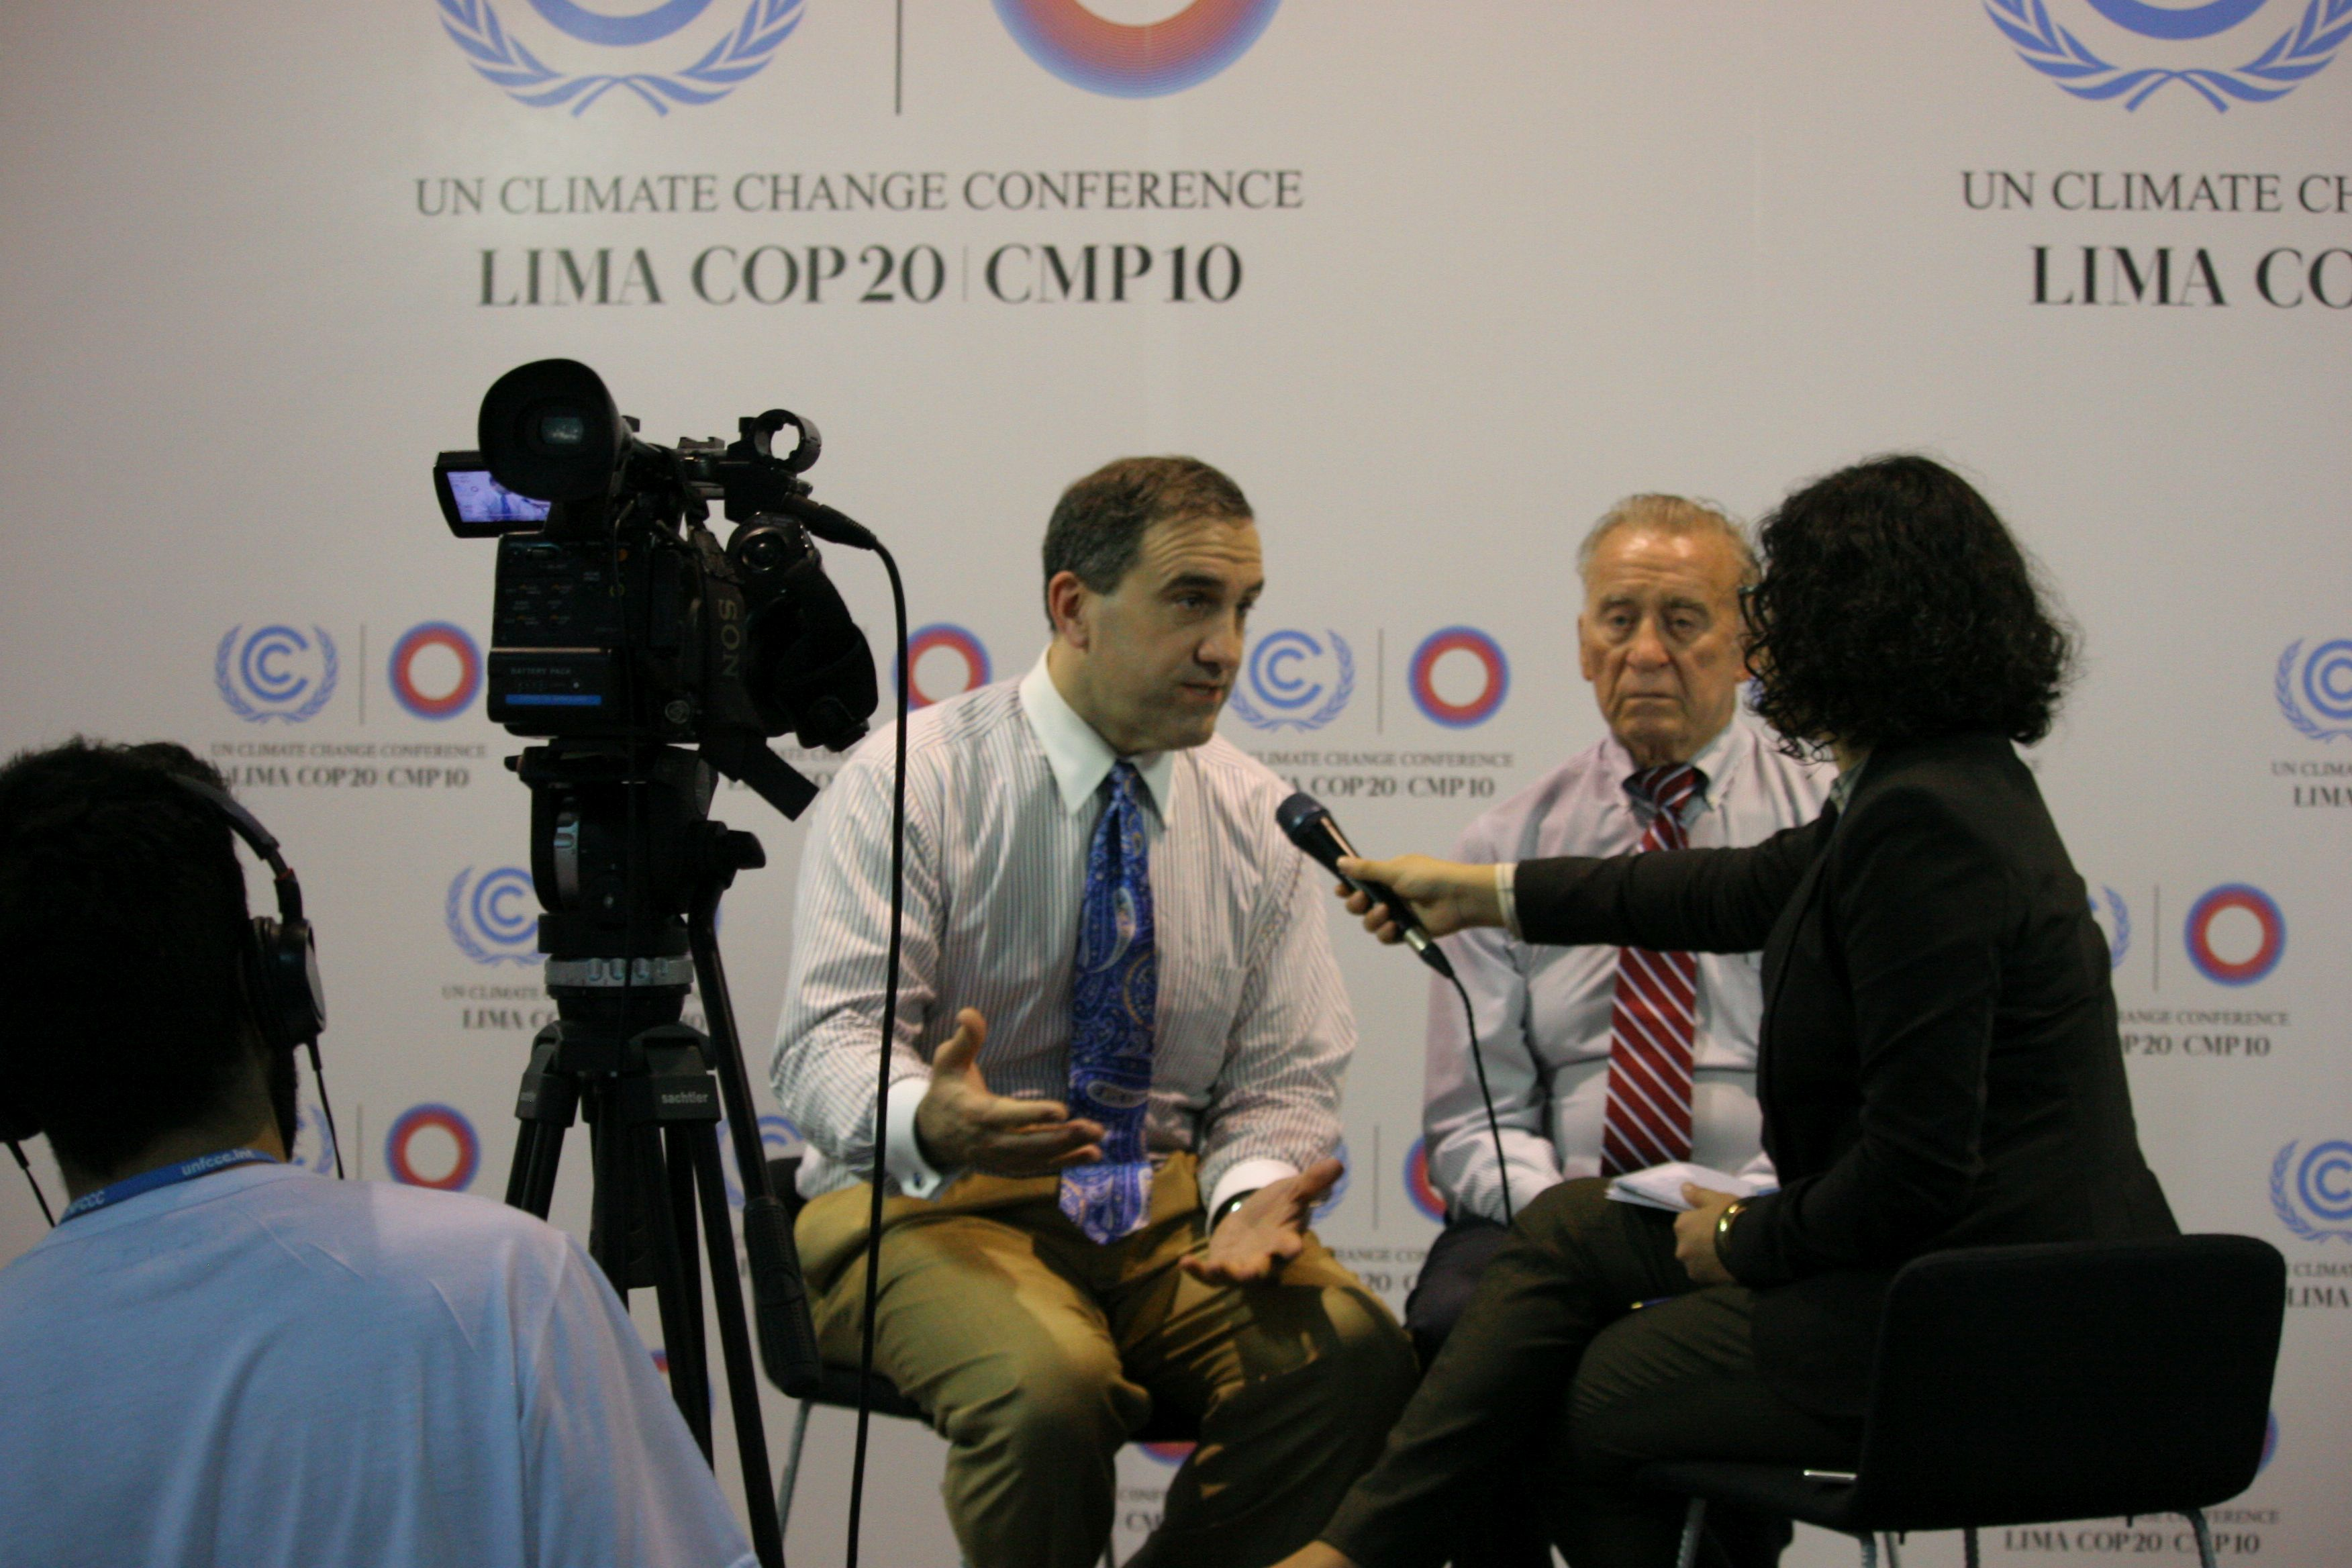 Watch: Marc Morano & Walt Cunningham in contentious debate on UN Climate TV at Lima Summit